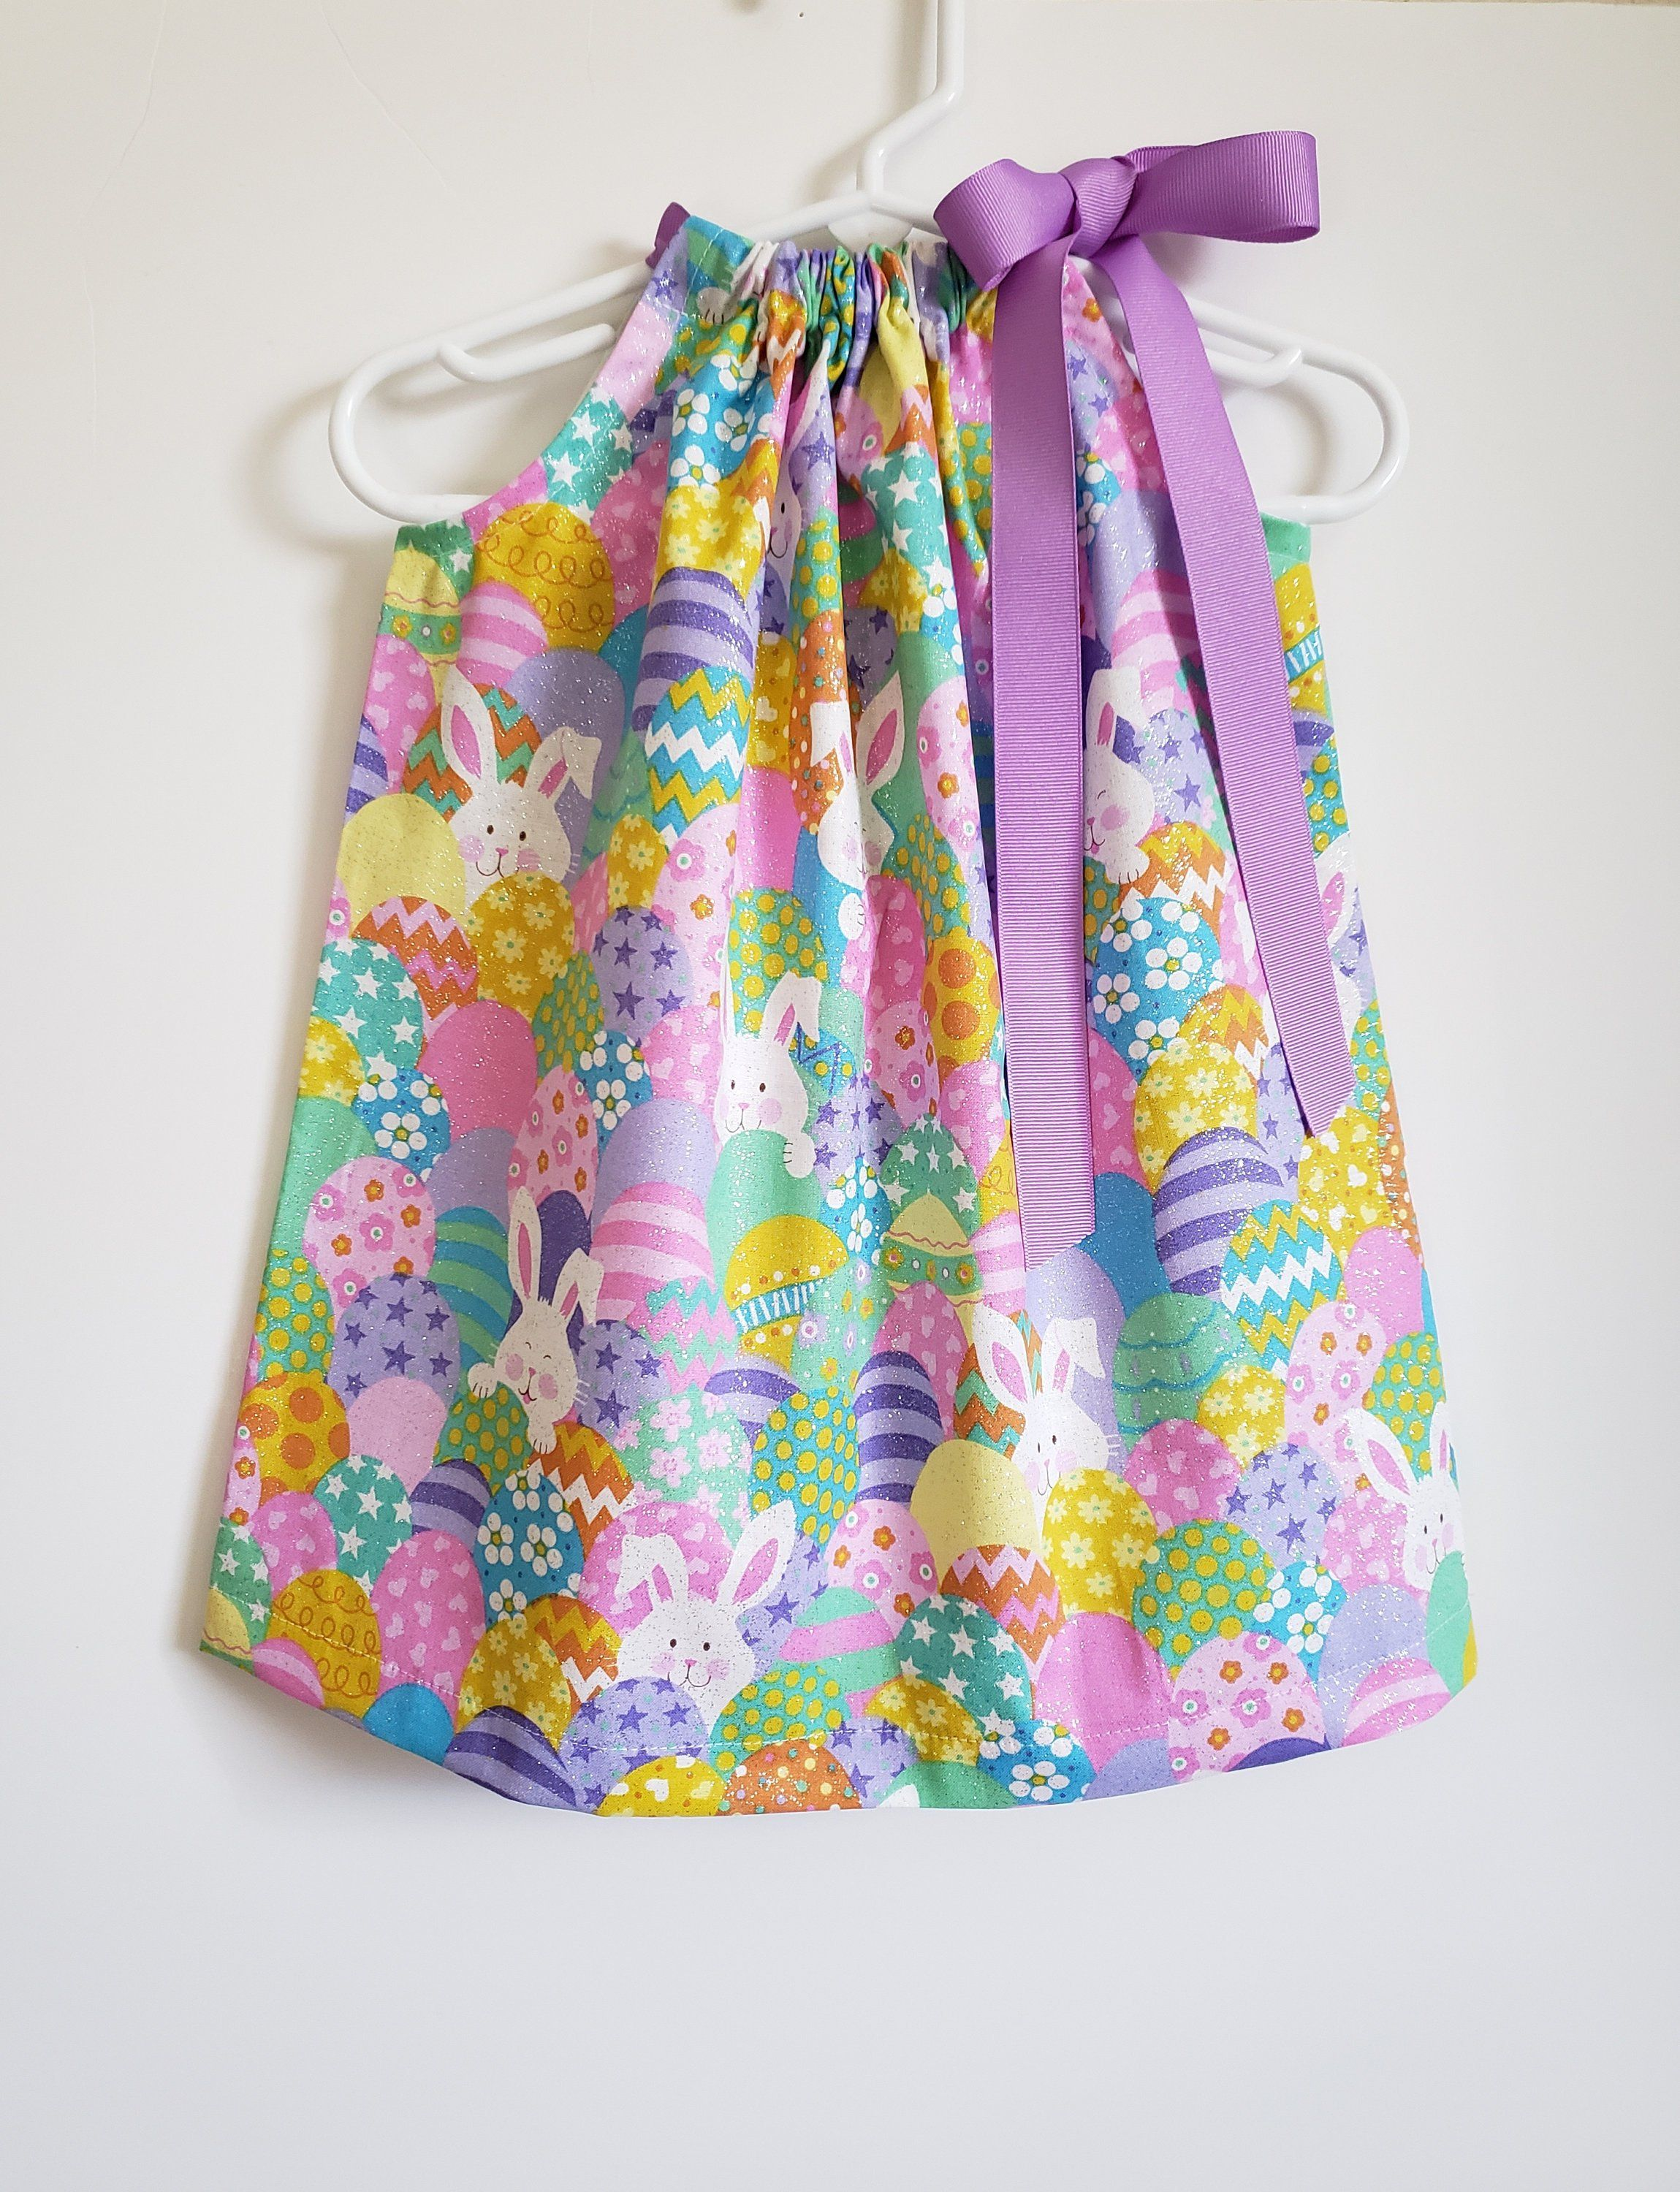 NEW Infant Girls Easter Bunny Pink Spring Butterfly Dress 2 pc Set 6m 9m